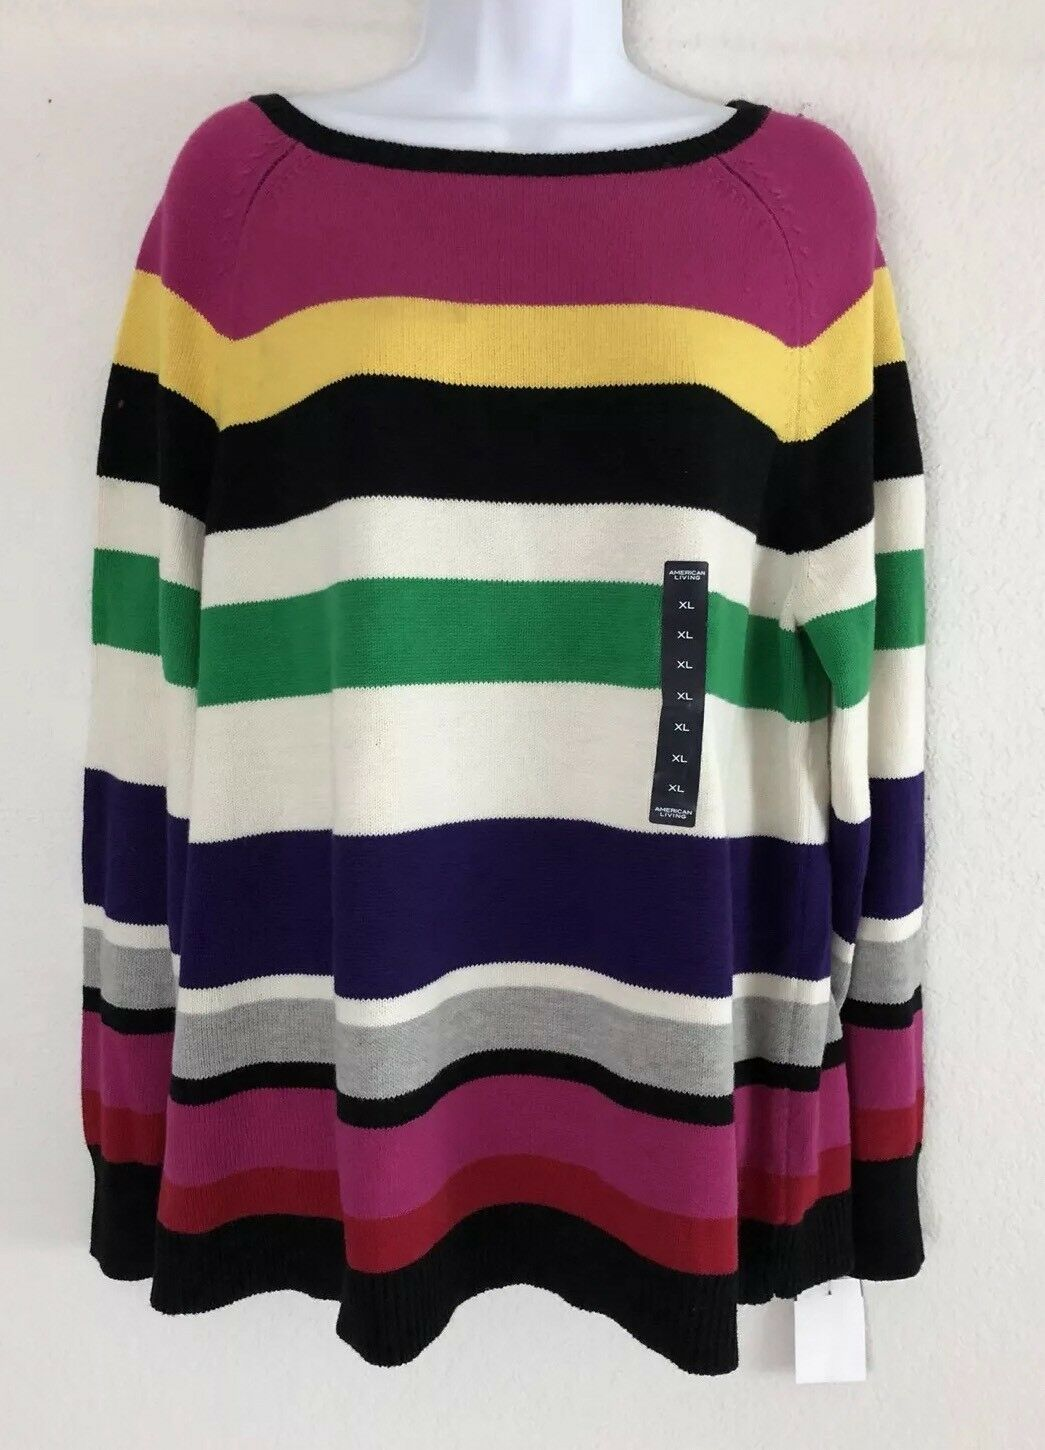 American Living Women's Sweater Sz XL Multi Pink Green Yellow Purple LS NEW A35